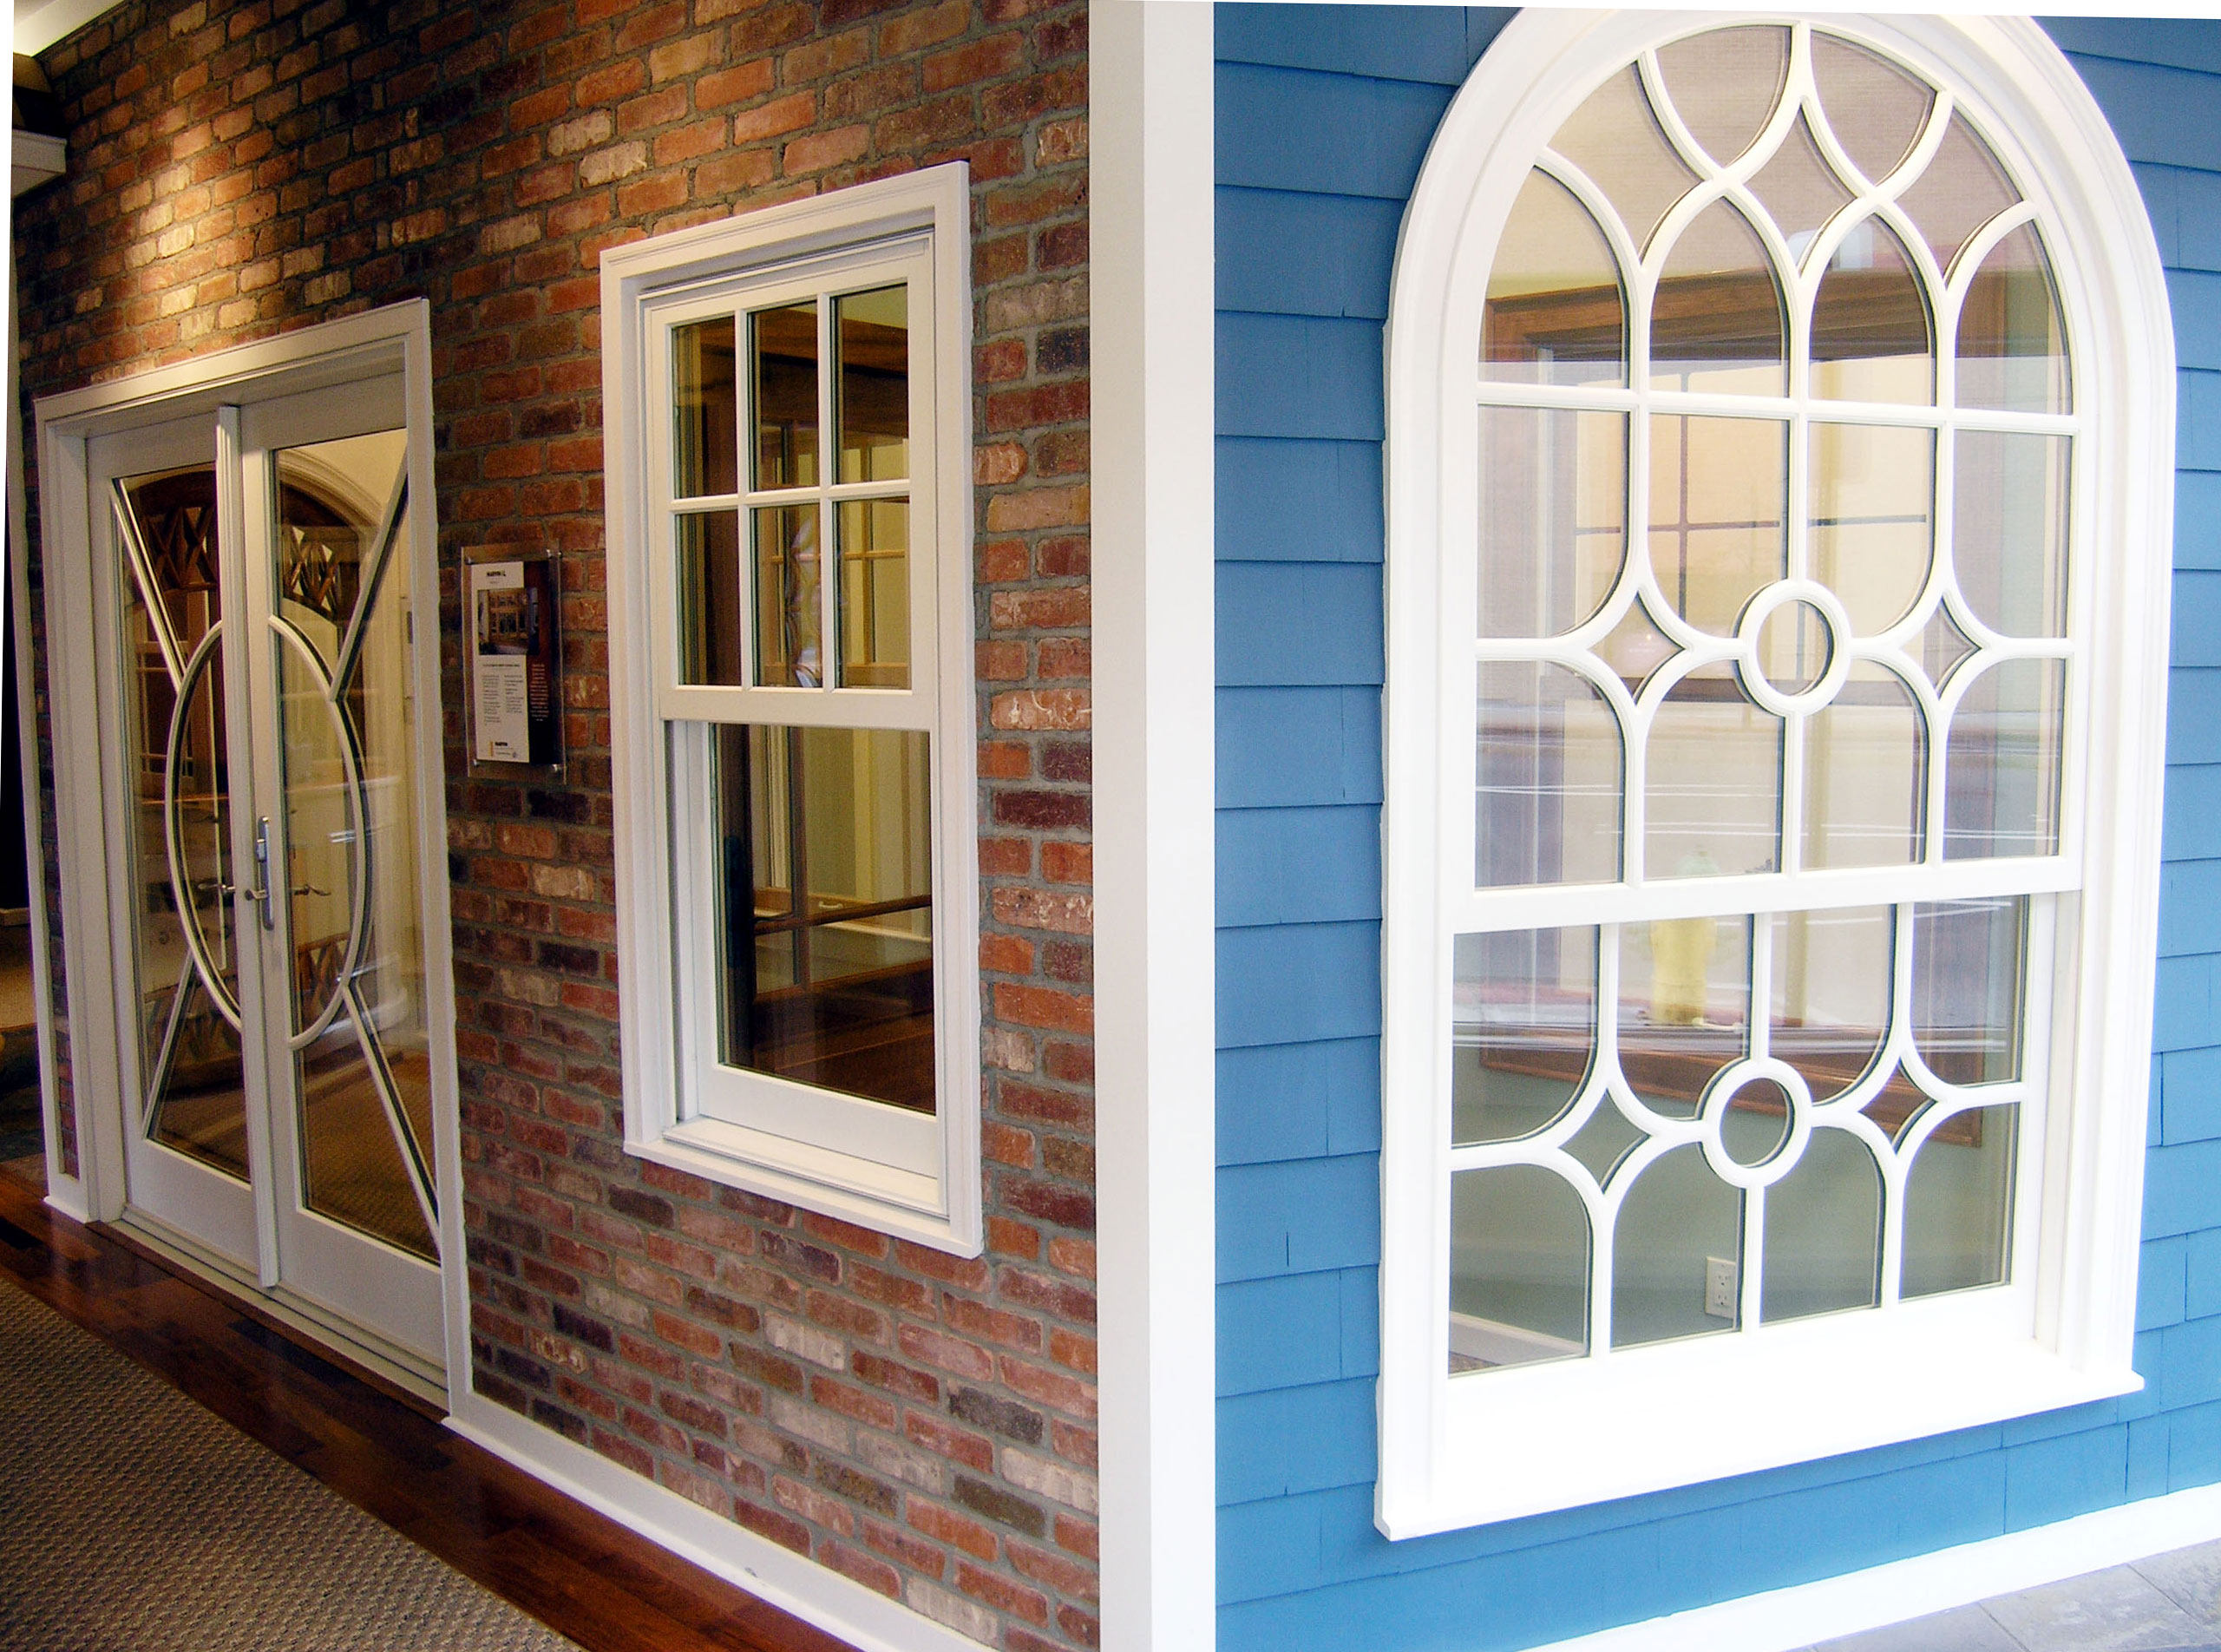 About us elmsford ny authentic window design for Door and window design